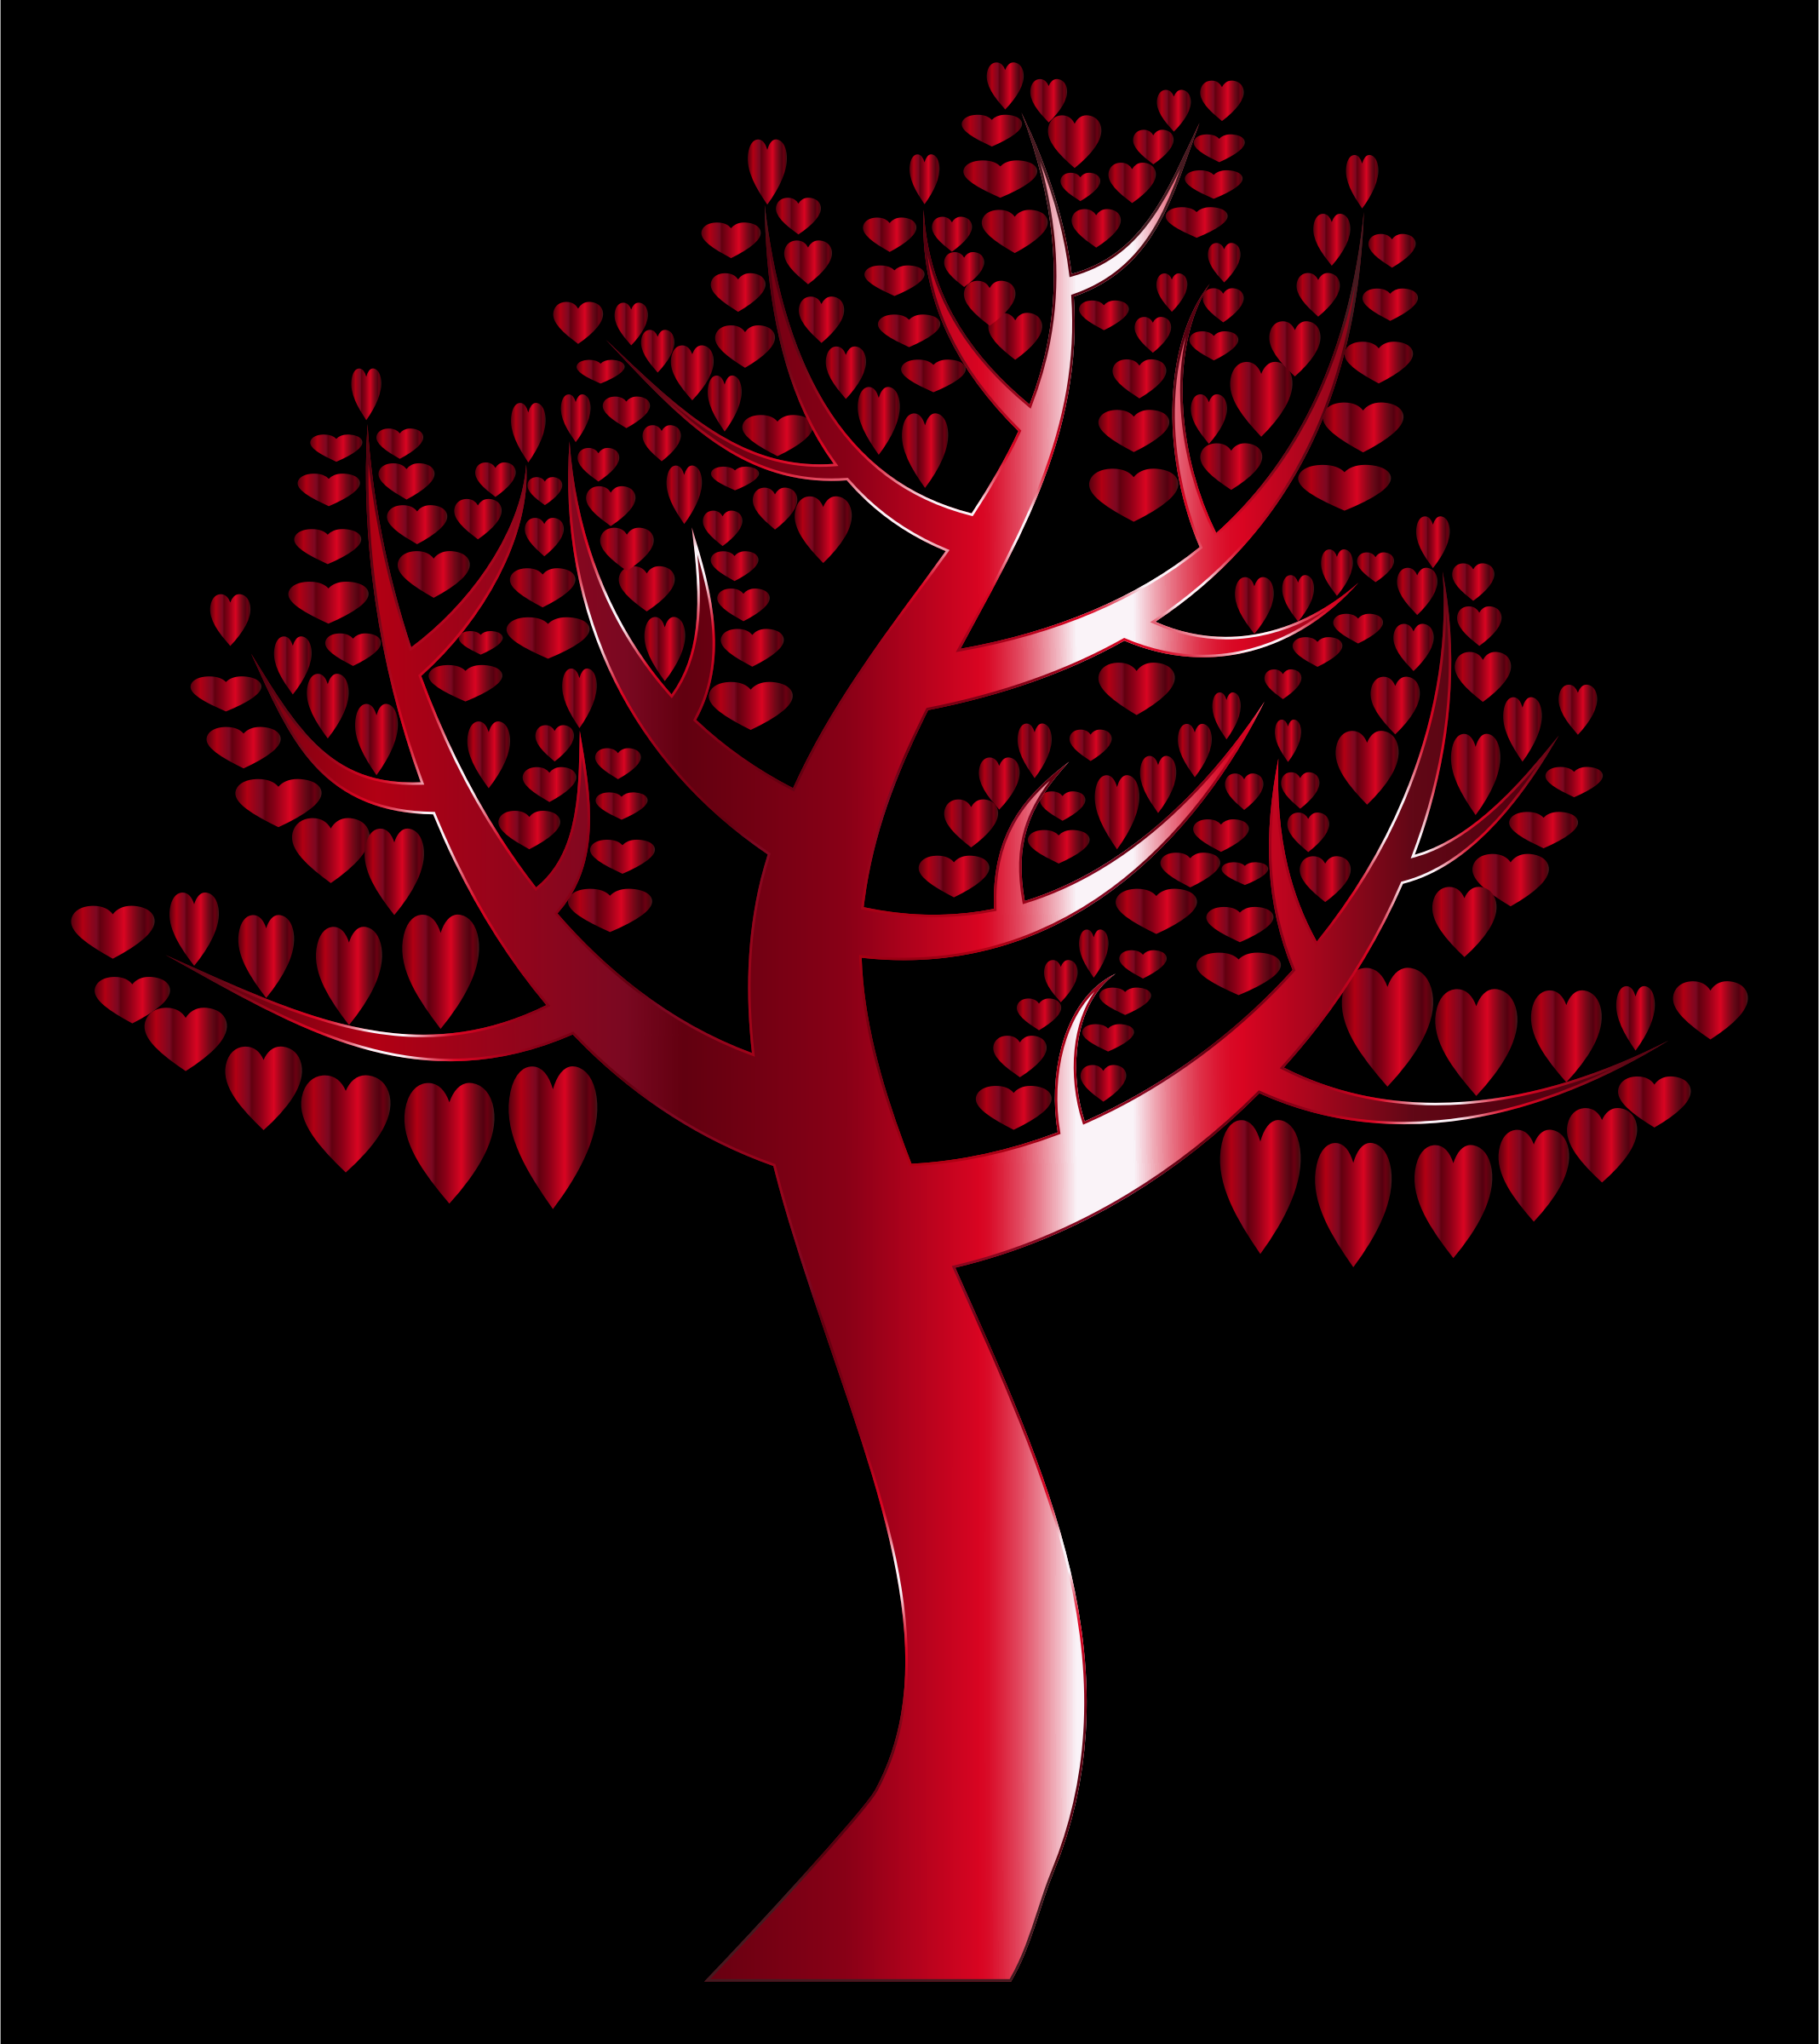 Simple Hearts Tree 11 by GDJ